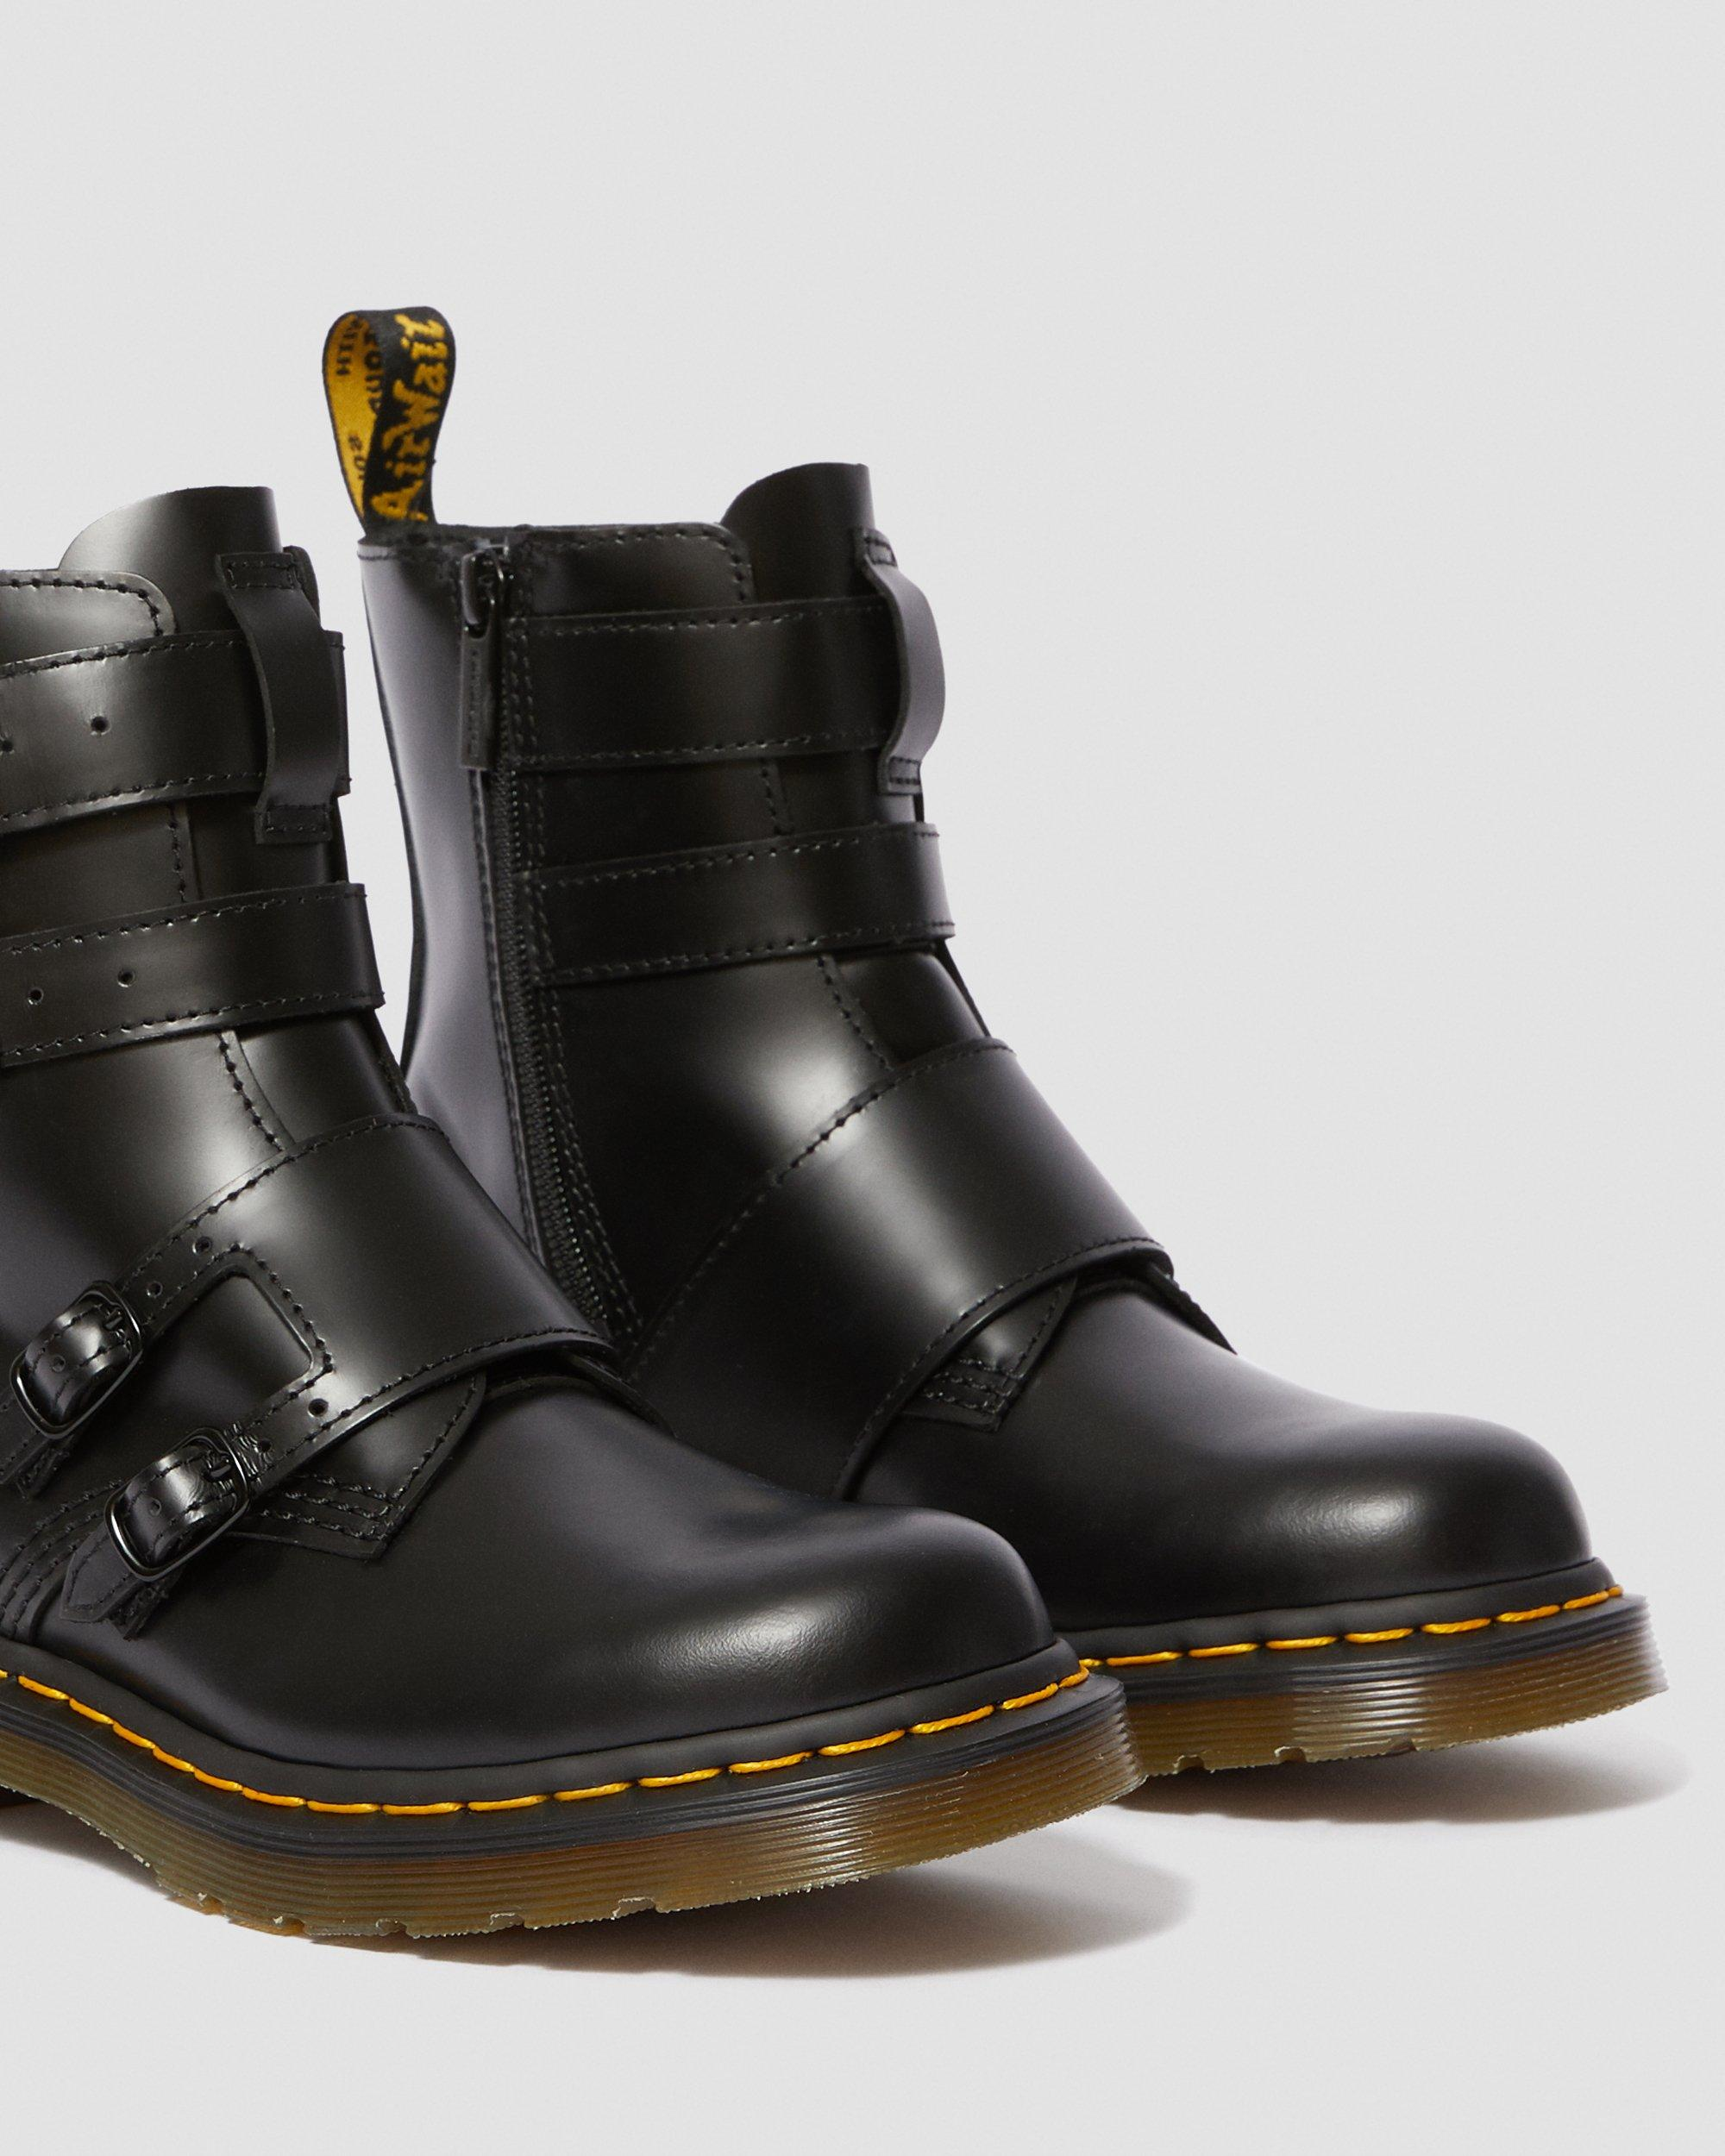 Dr martens blake ii leather buckle boots | Bottes, Cuir